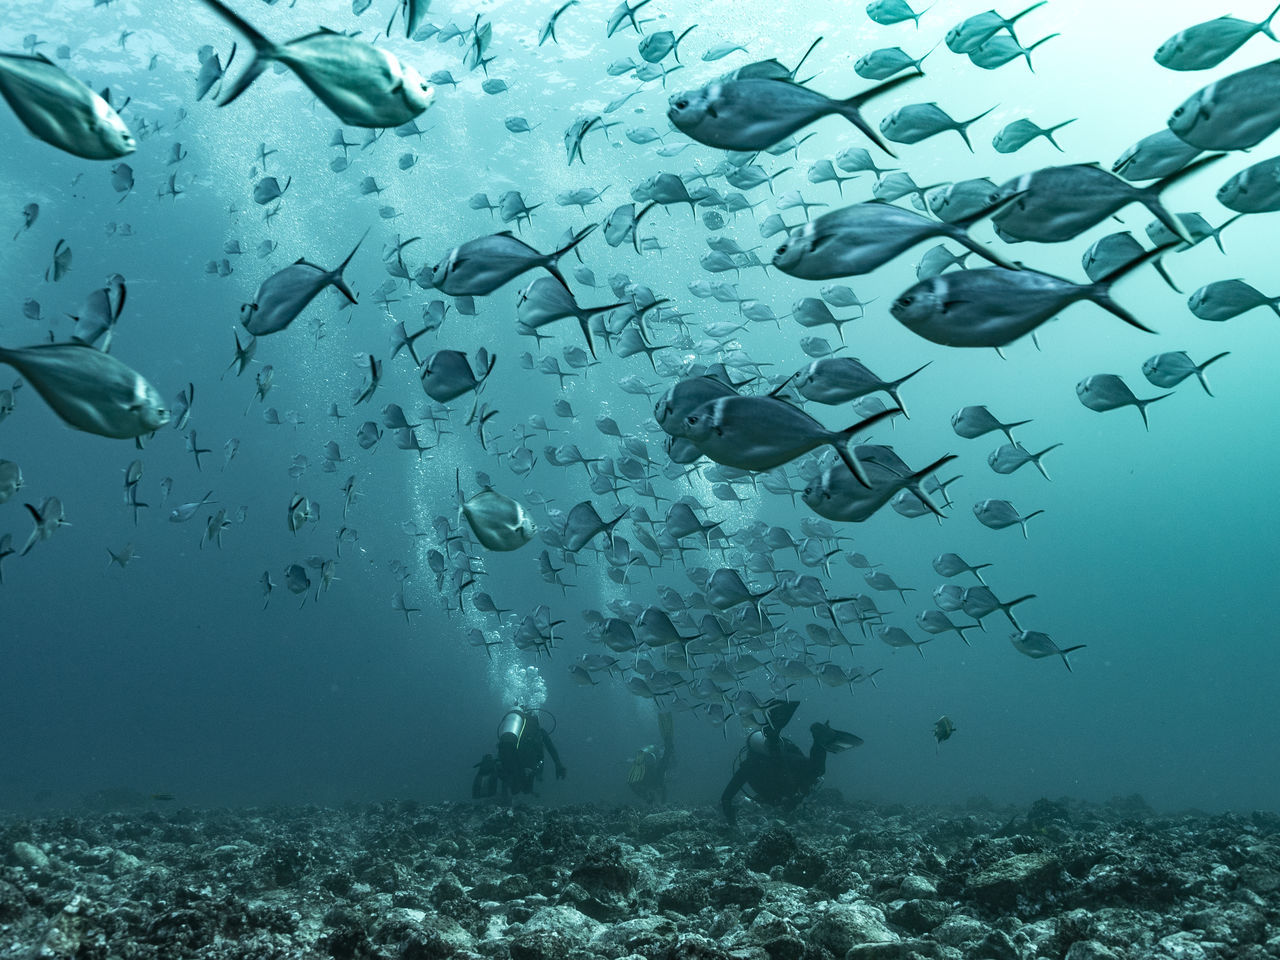 People scuba diving by school of fish in sea